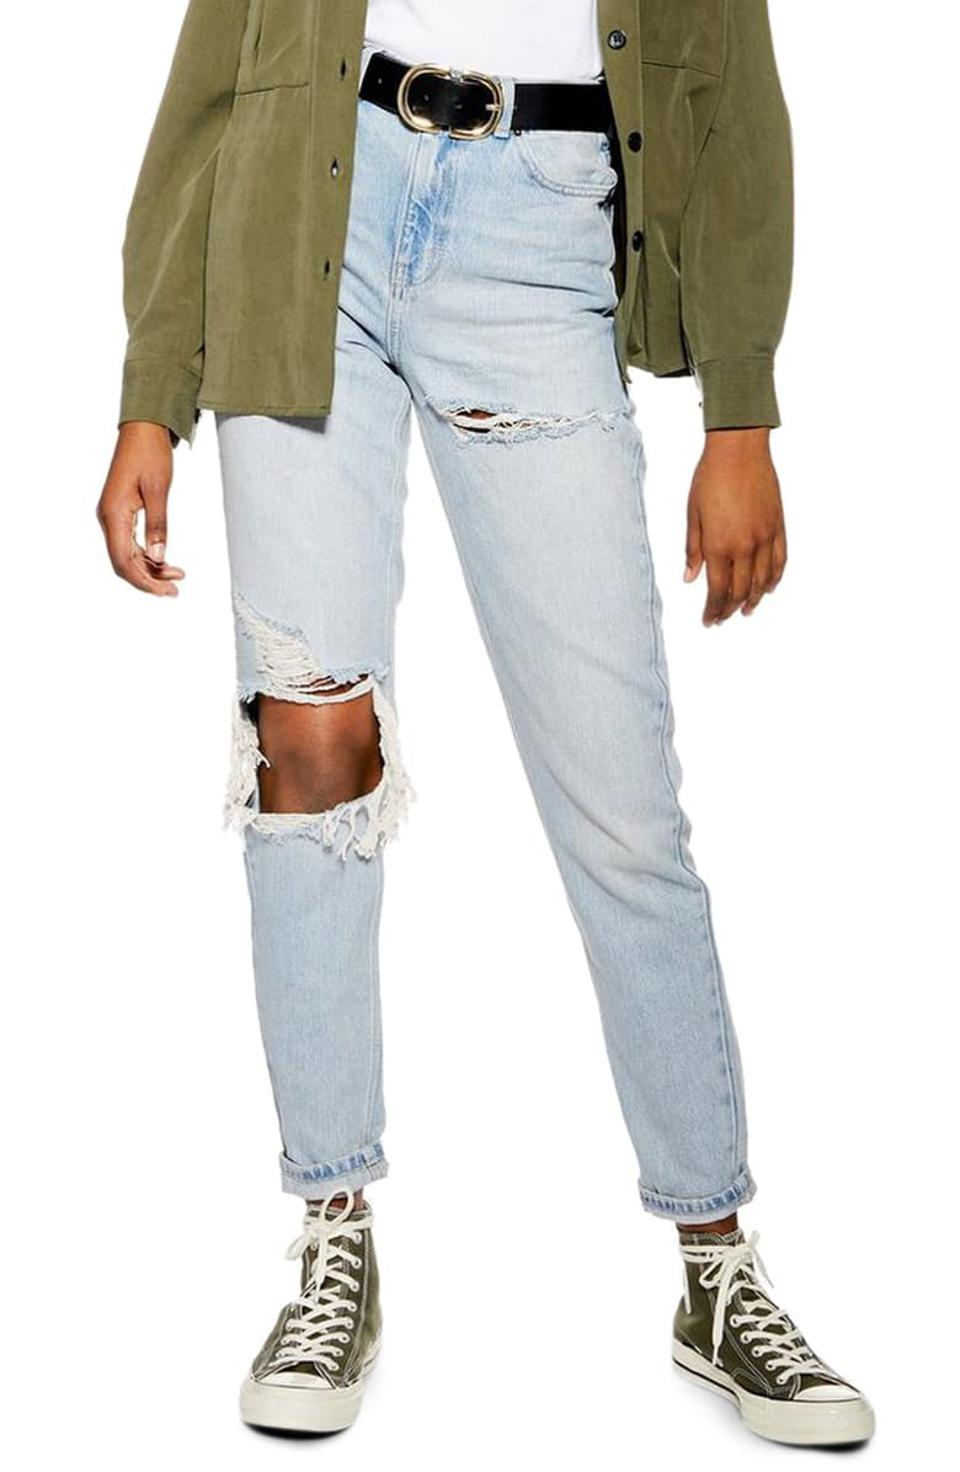 Topshop High-Waist Ripped Mom Jeans